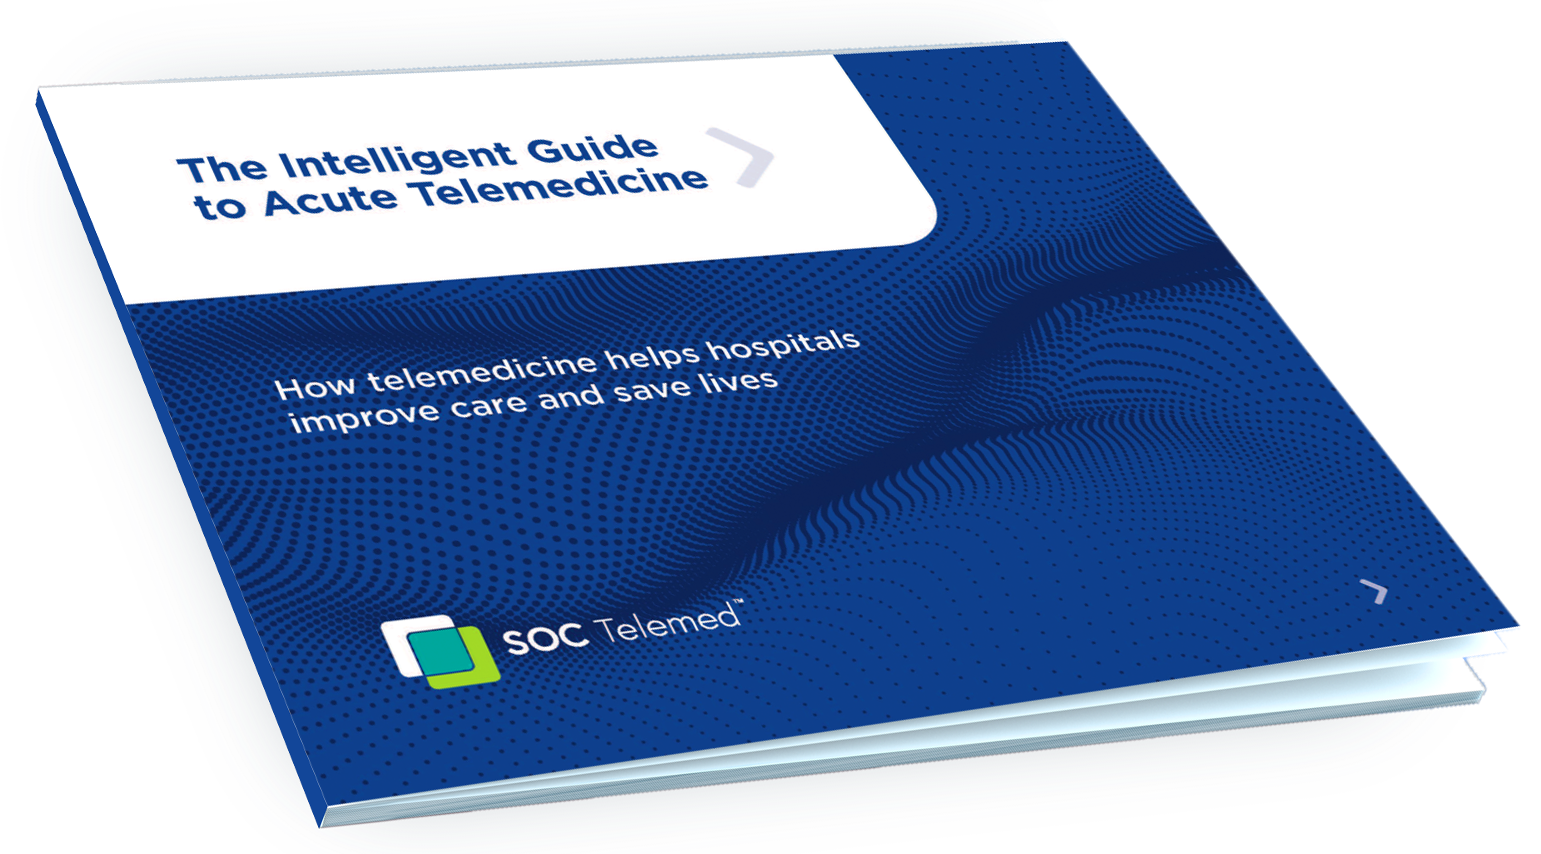 The_Intelligent_Guide_to_Acute_Telemedicine_eBook